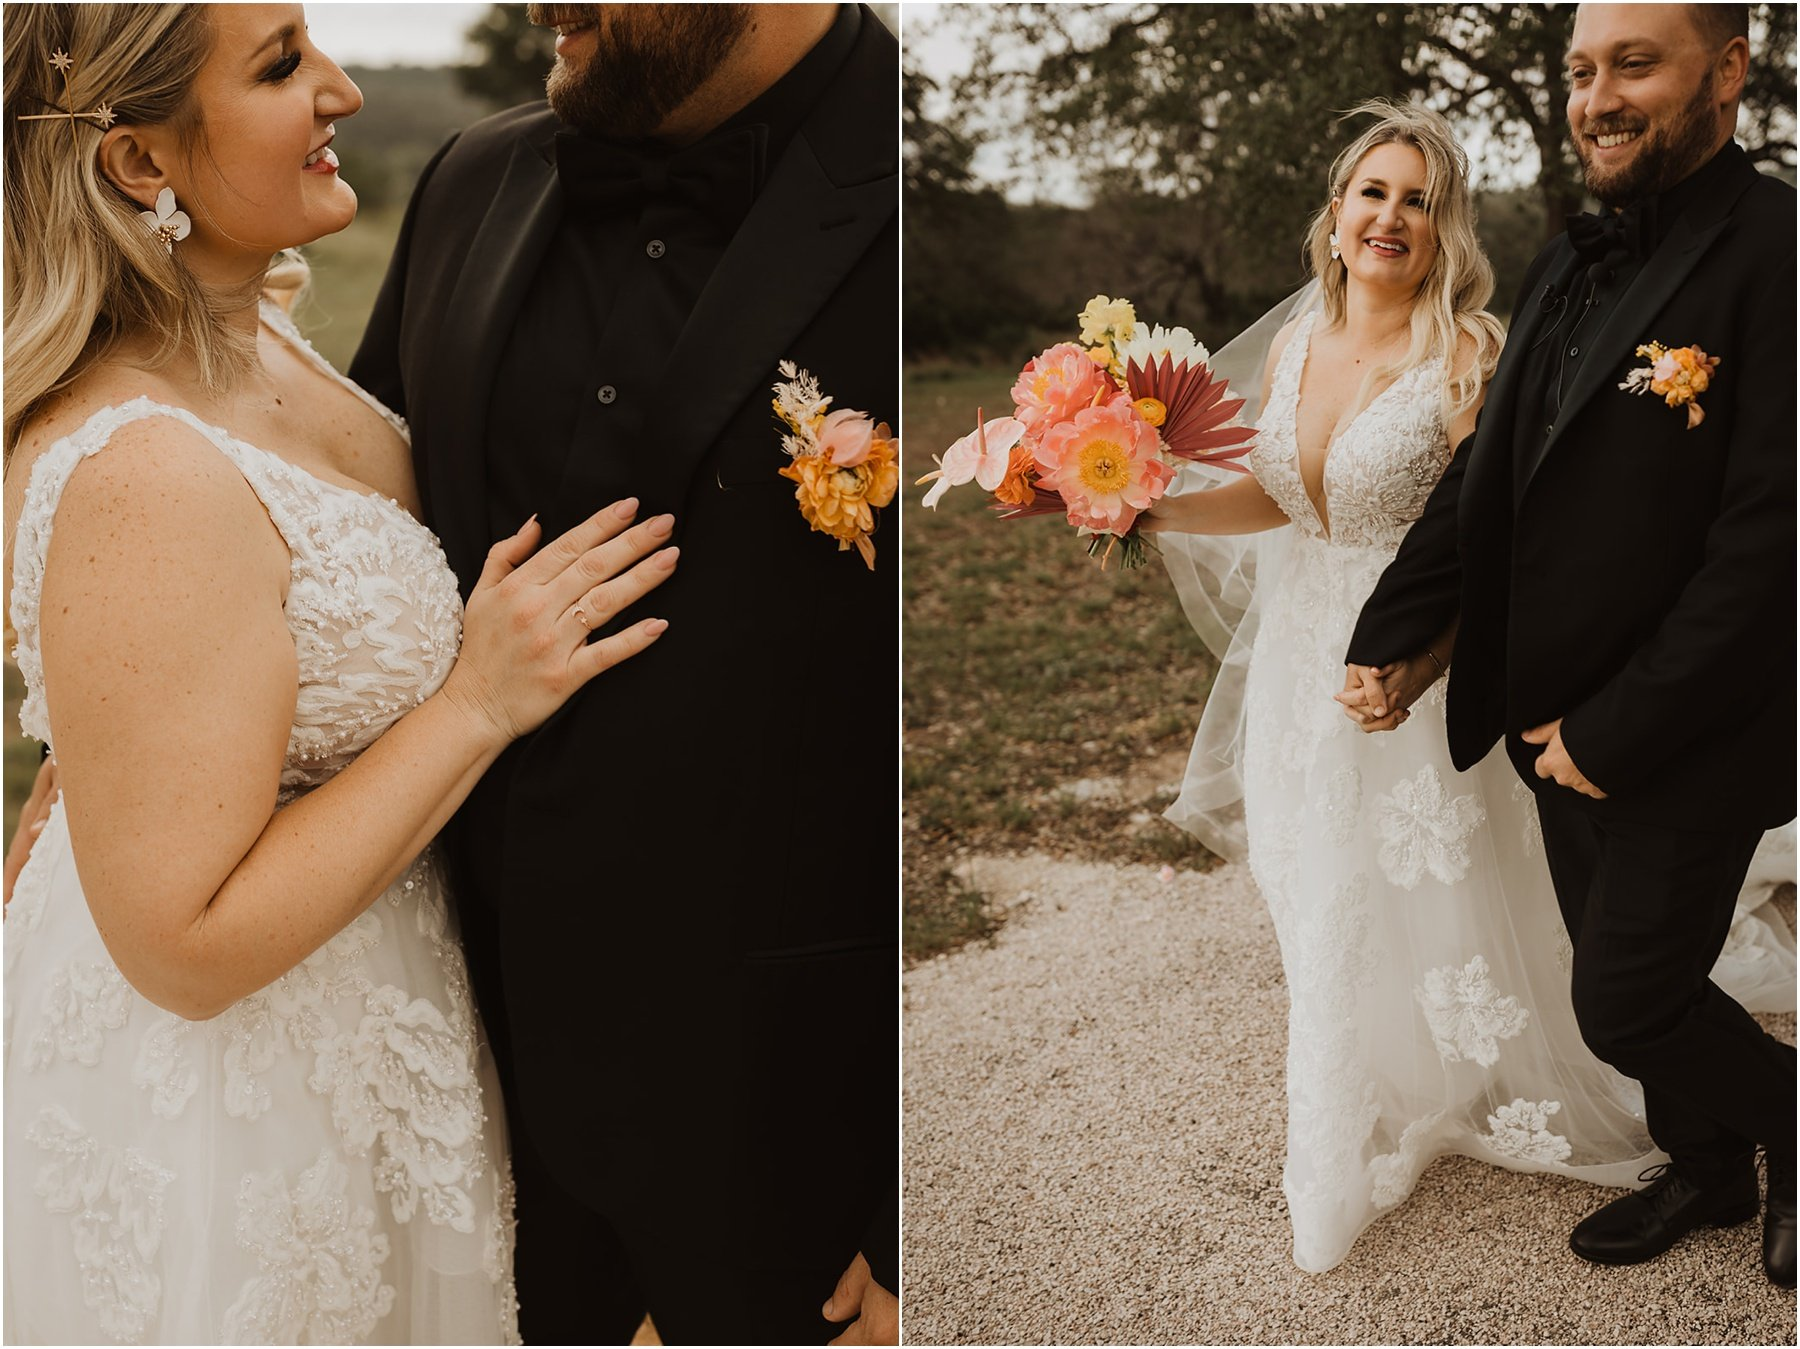 bride and groom wedding portraits, bride carrying a bright and colorful bouquet